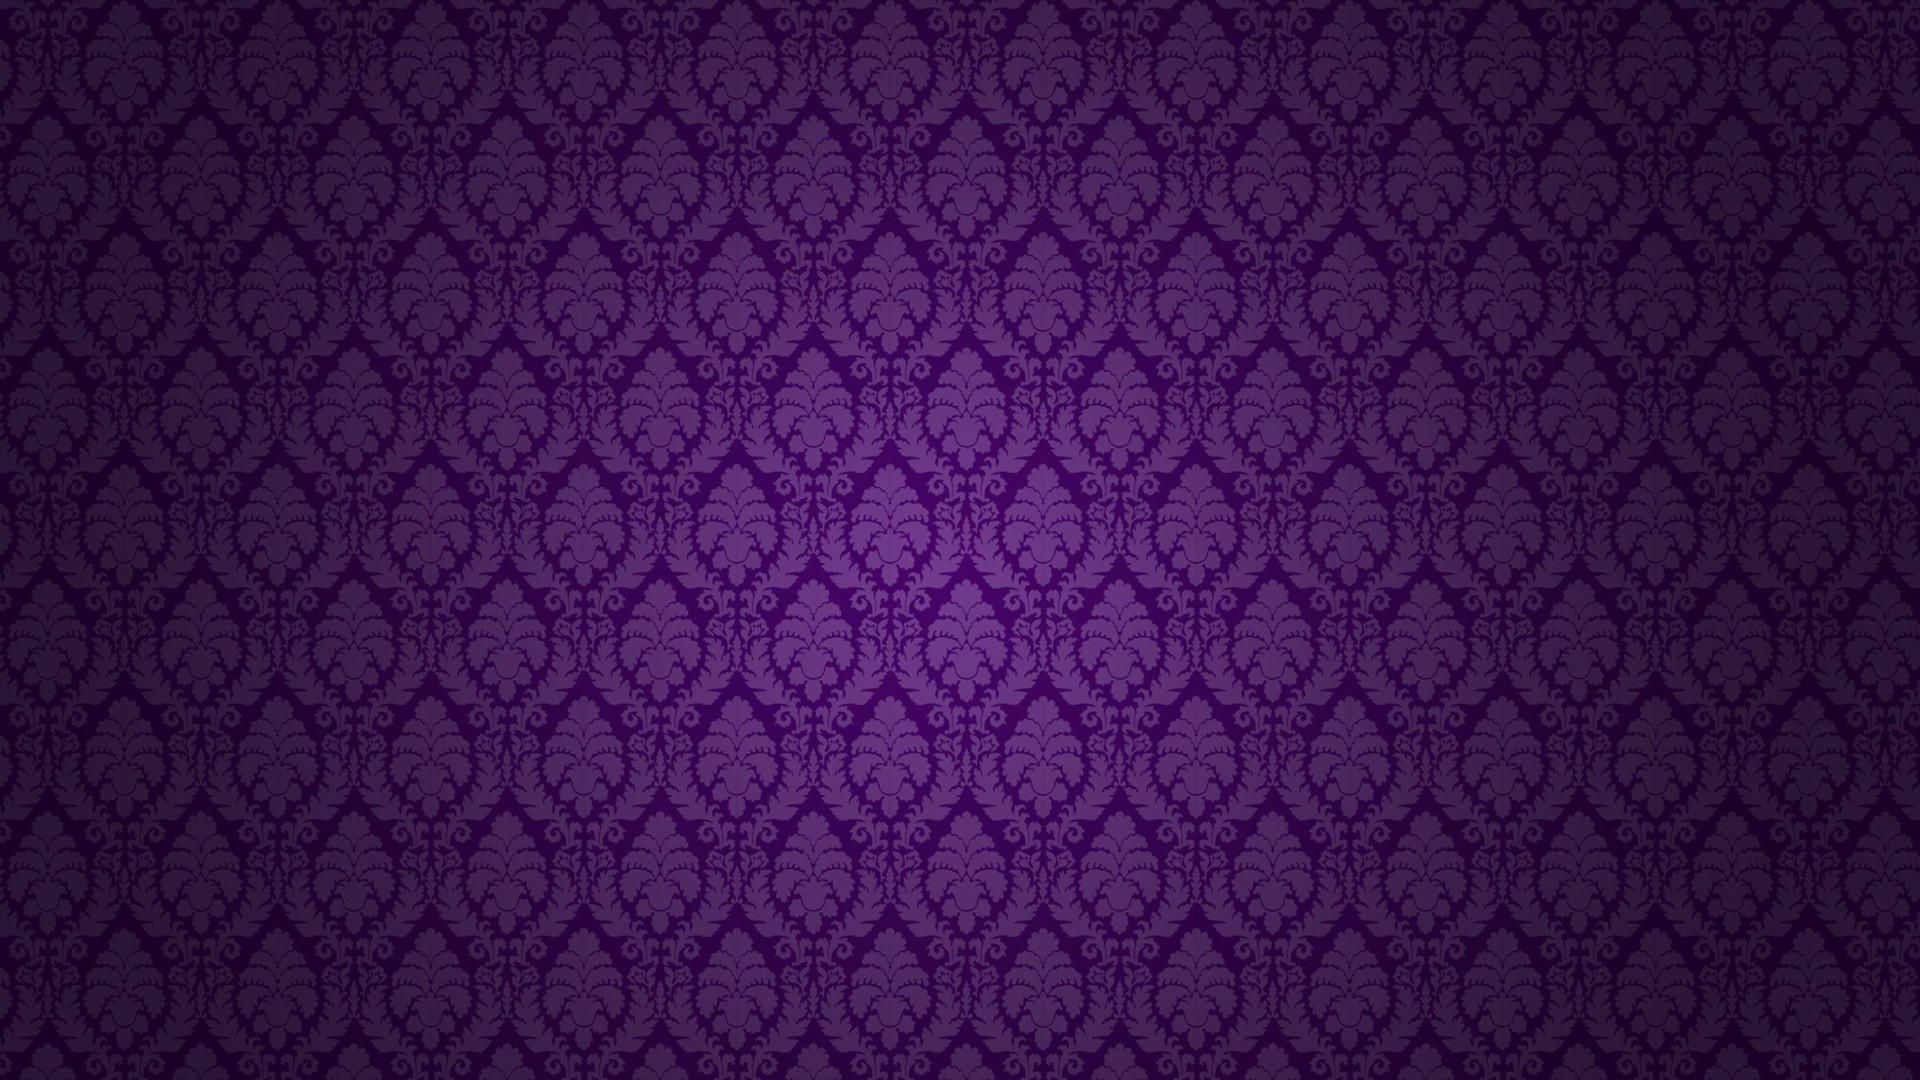 1920x1080 Free Purple Wallpapers